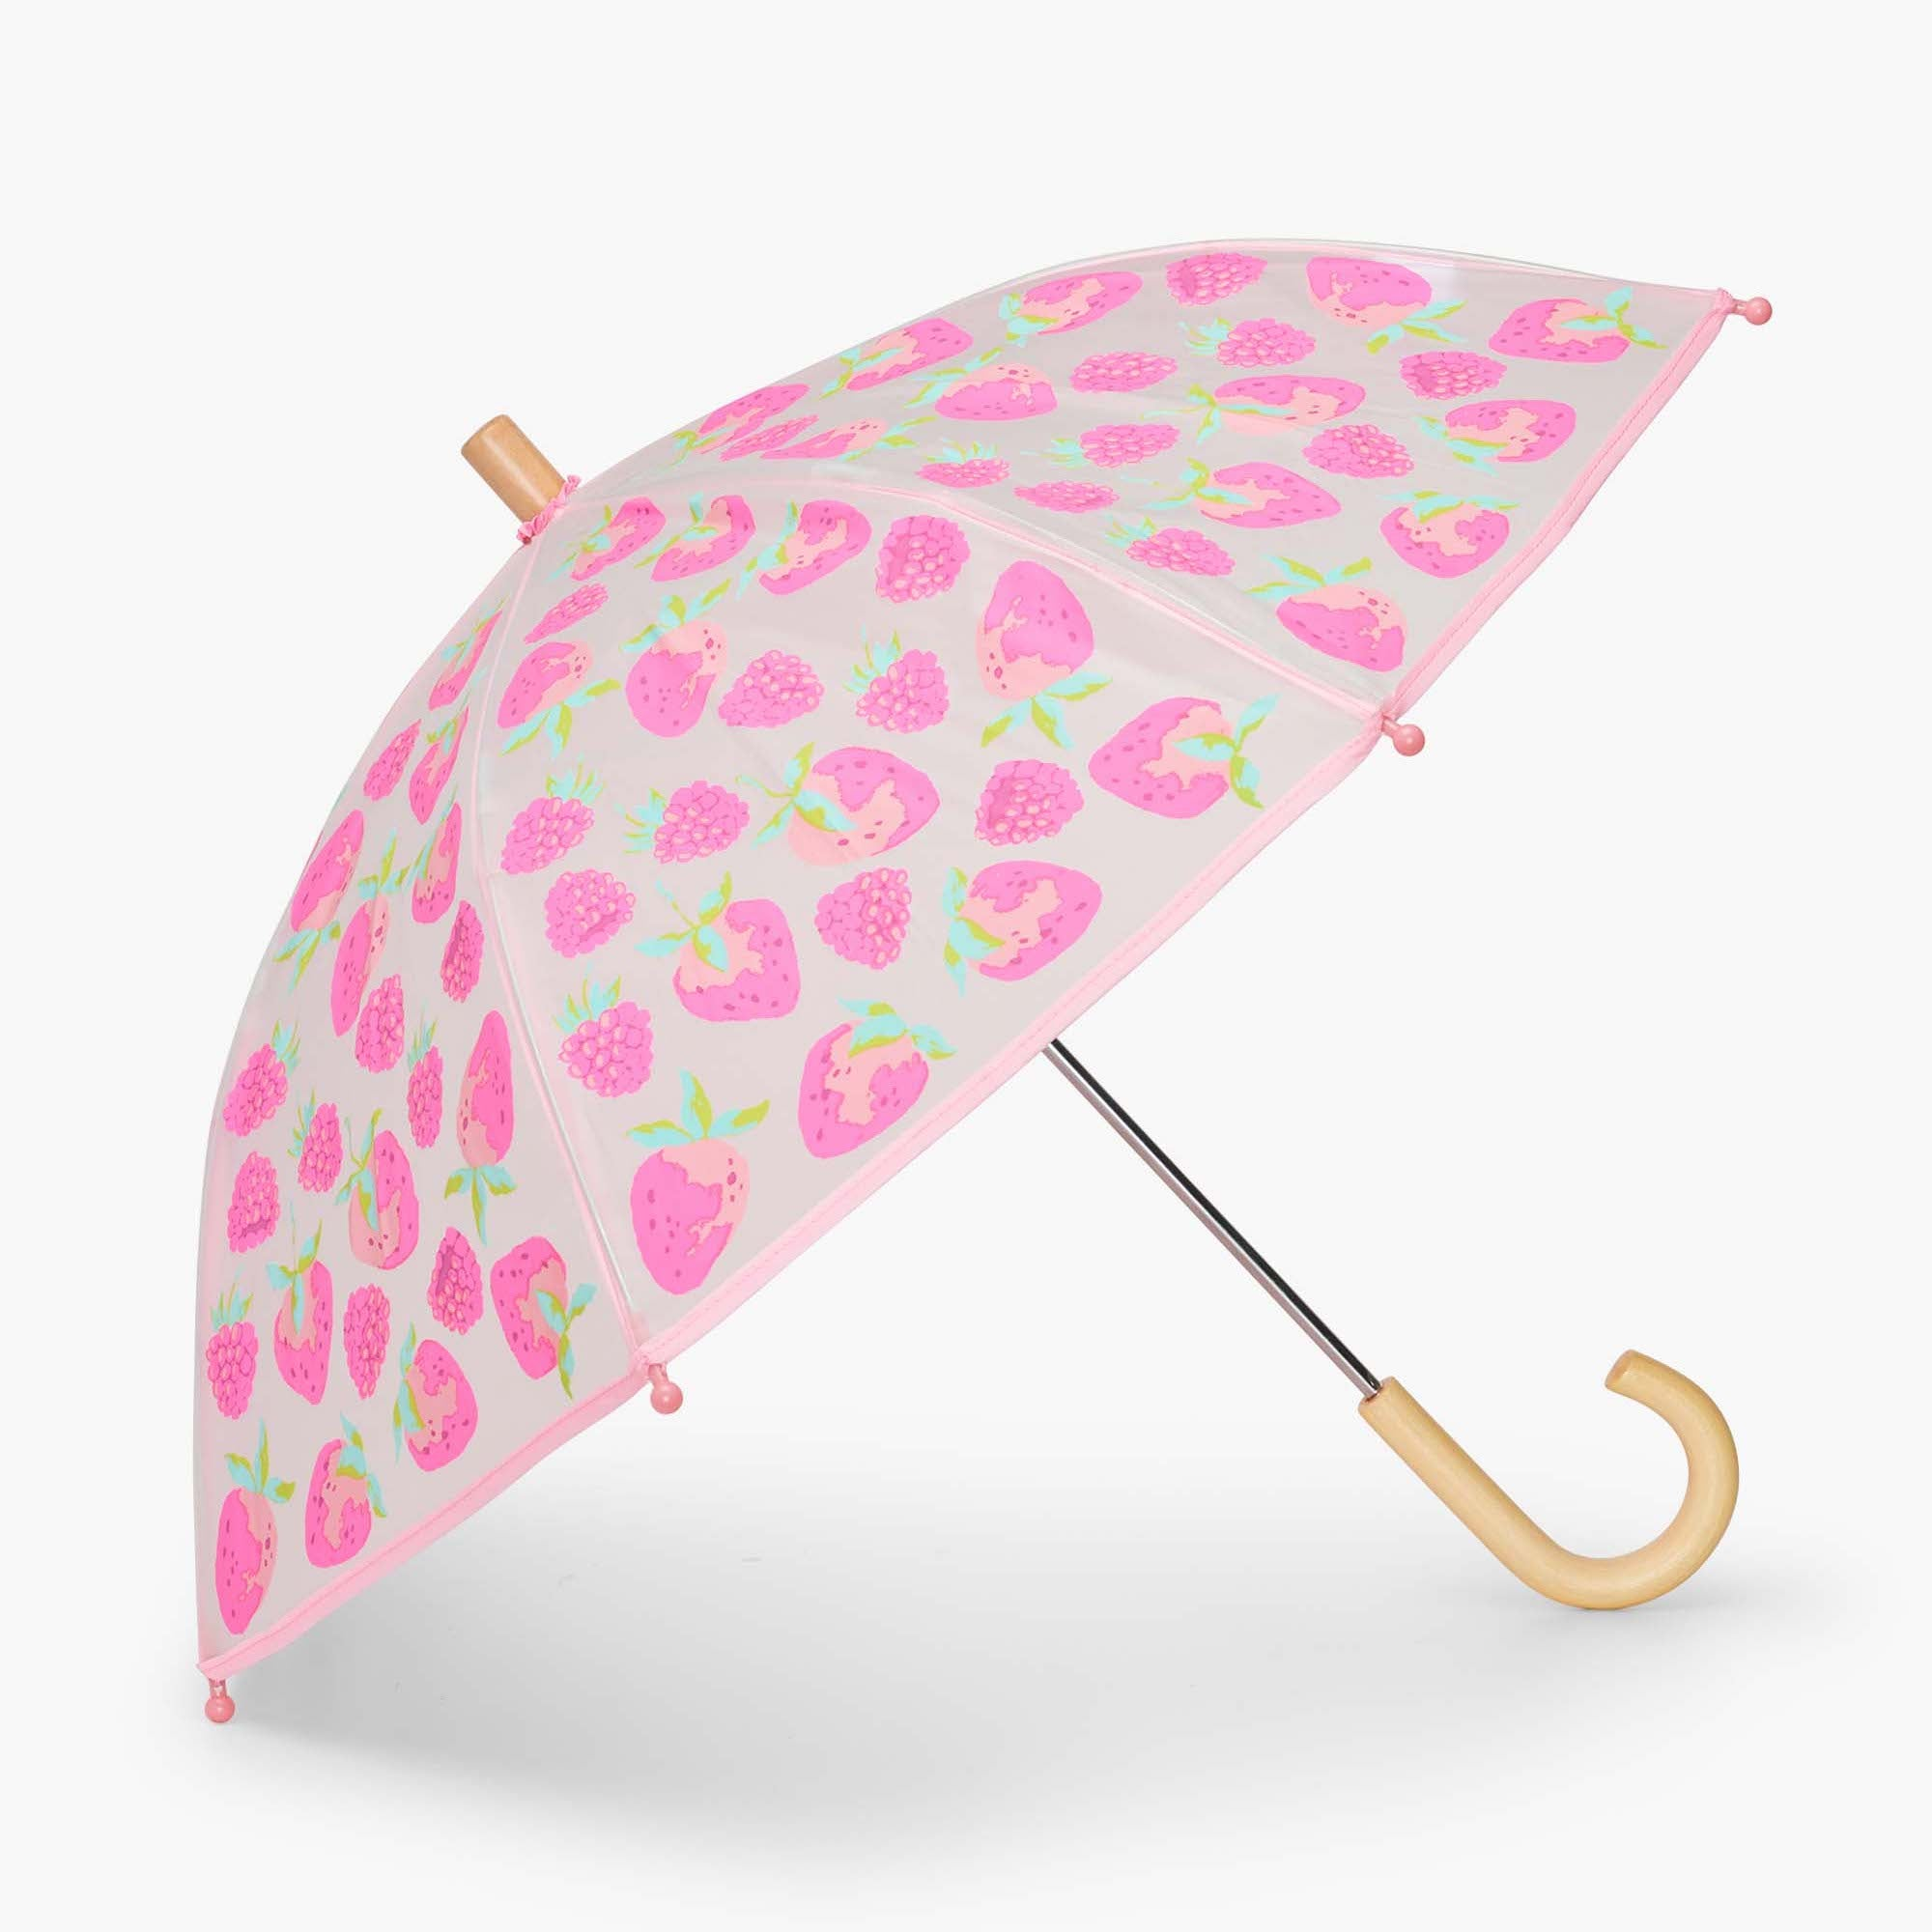 Hatley 'Delicious Berries' Umbrella